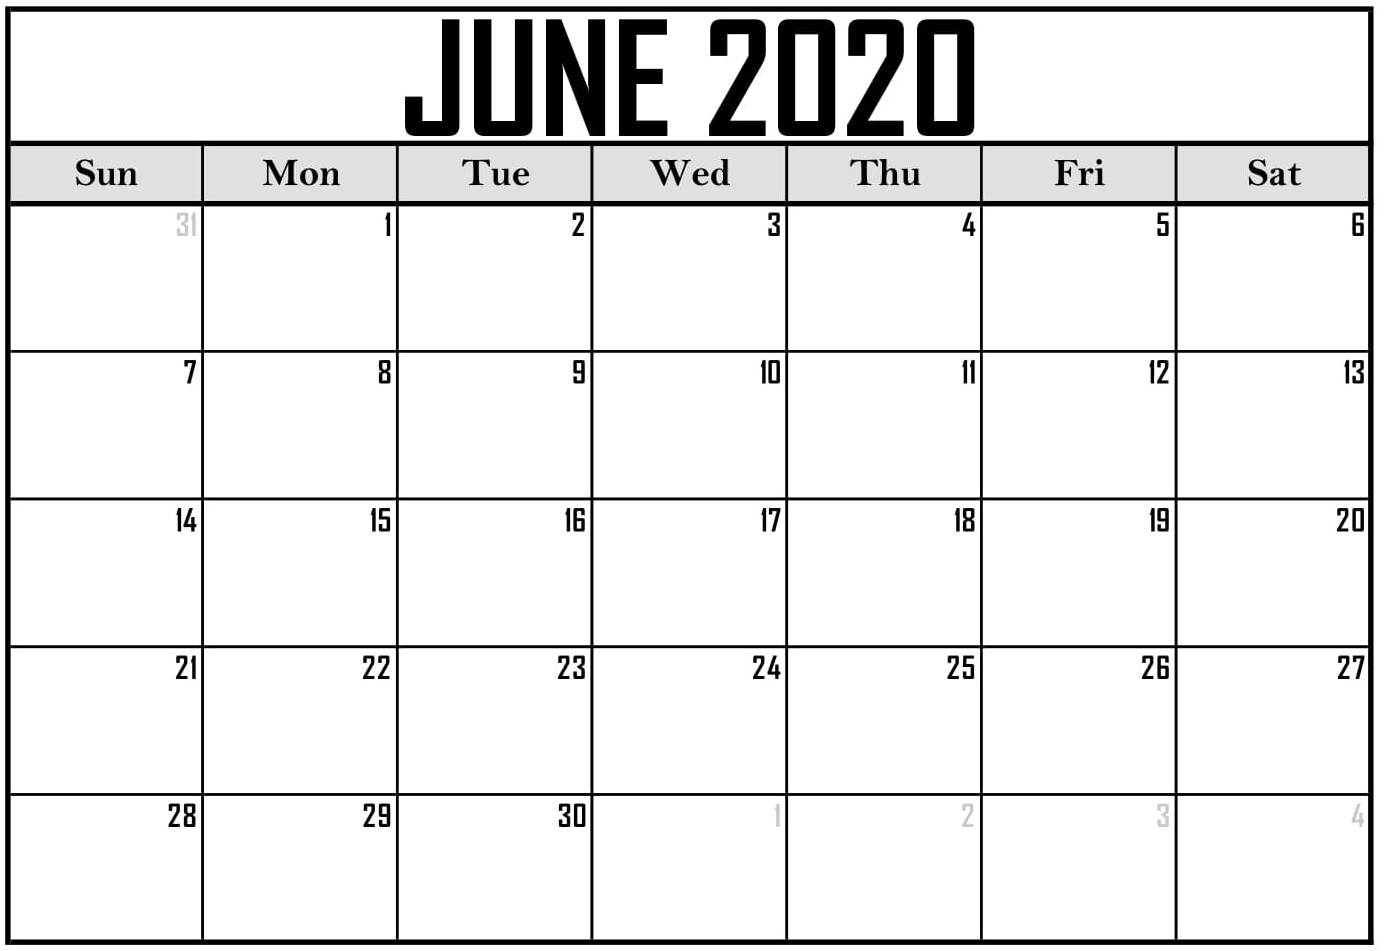 Free Printable June 2020 Calendar With Blank Notes - Set For Free June 2020 Activities Calendar Template Assisted Living Editable